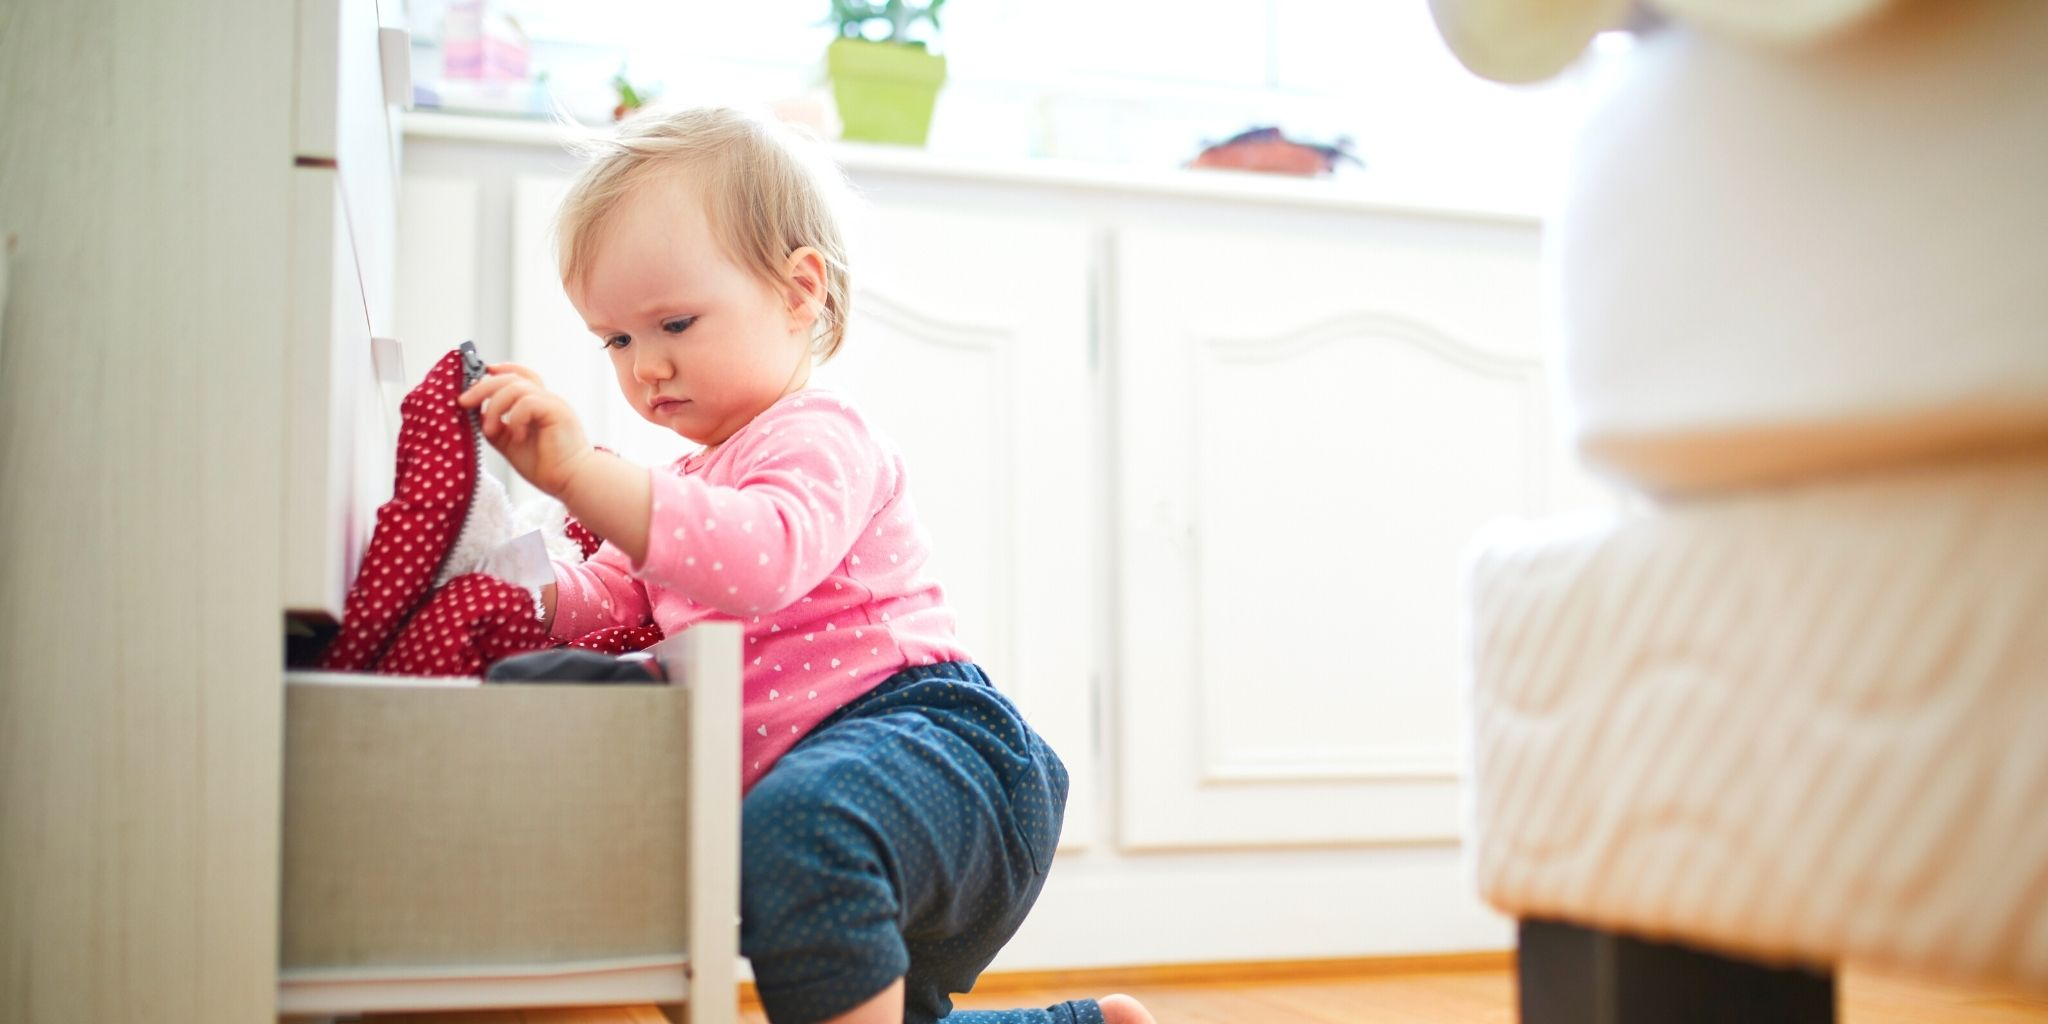 How to childproof your house: 5 child safety hacks every parent needs to know